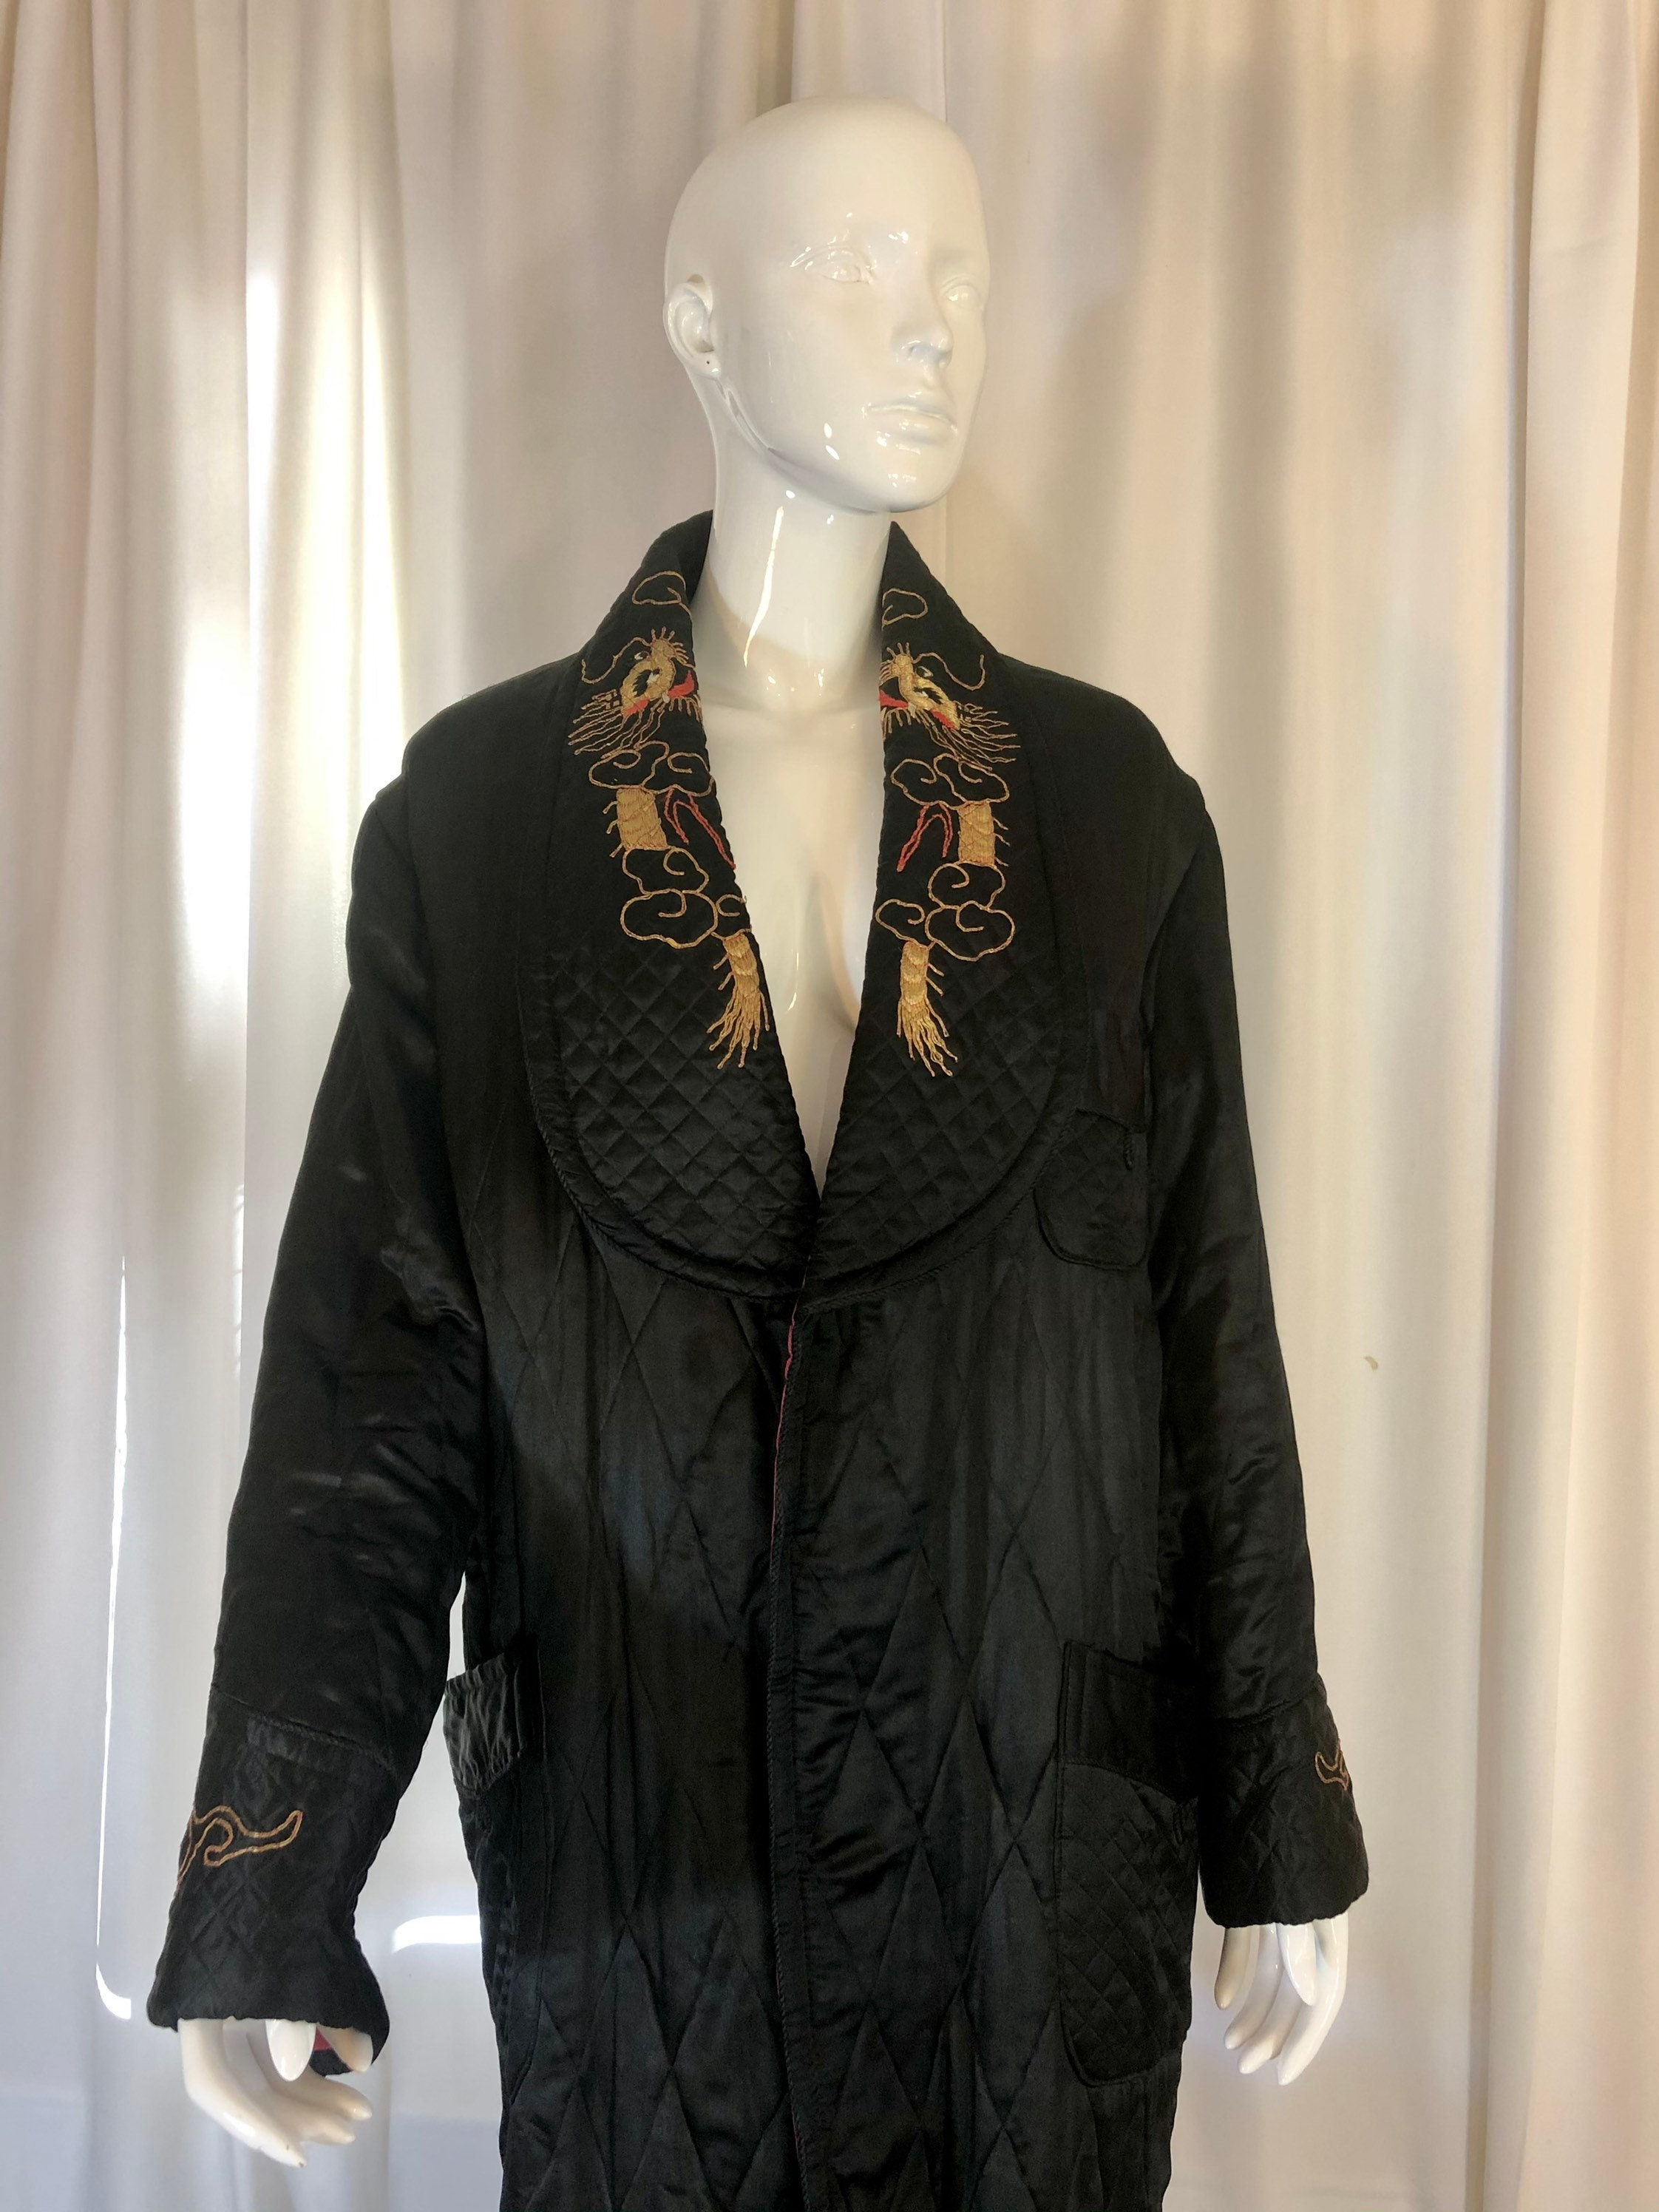 1940s Mens Ties | Wide Ties & Painted Ties 1940s Asian Black Silk Quilted Dragon Robe, Mens Small To Medium, Womens Medium Large, Silk, Satin, Quilted, Asian, Embroidered $0.00 AT vintagedancer.com